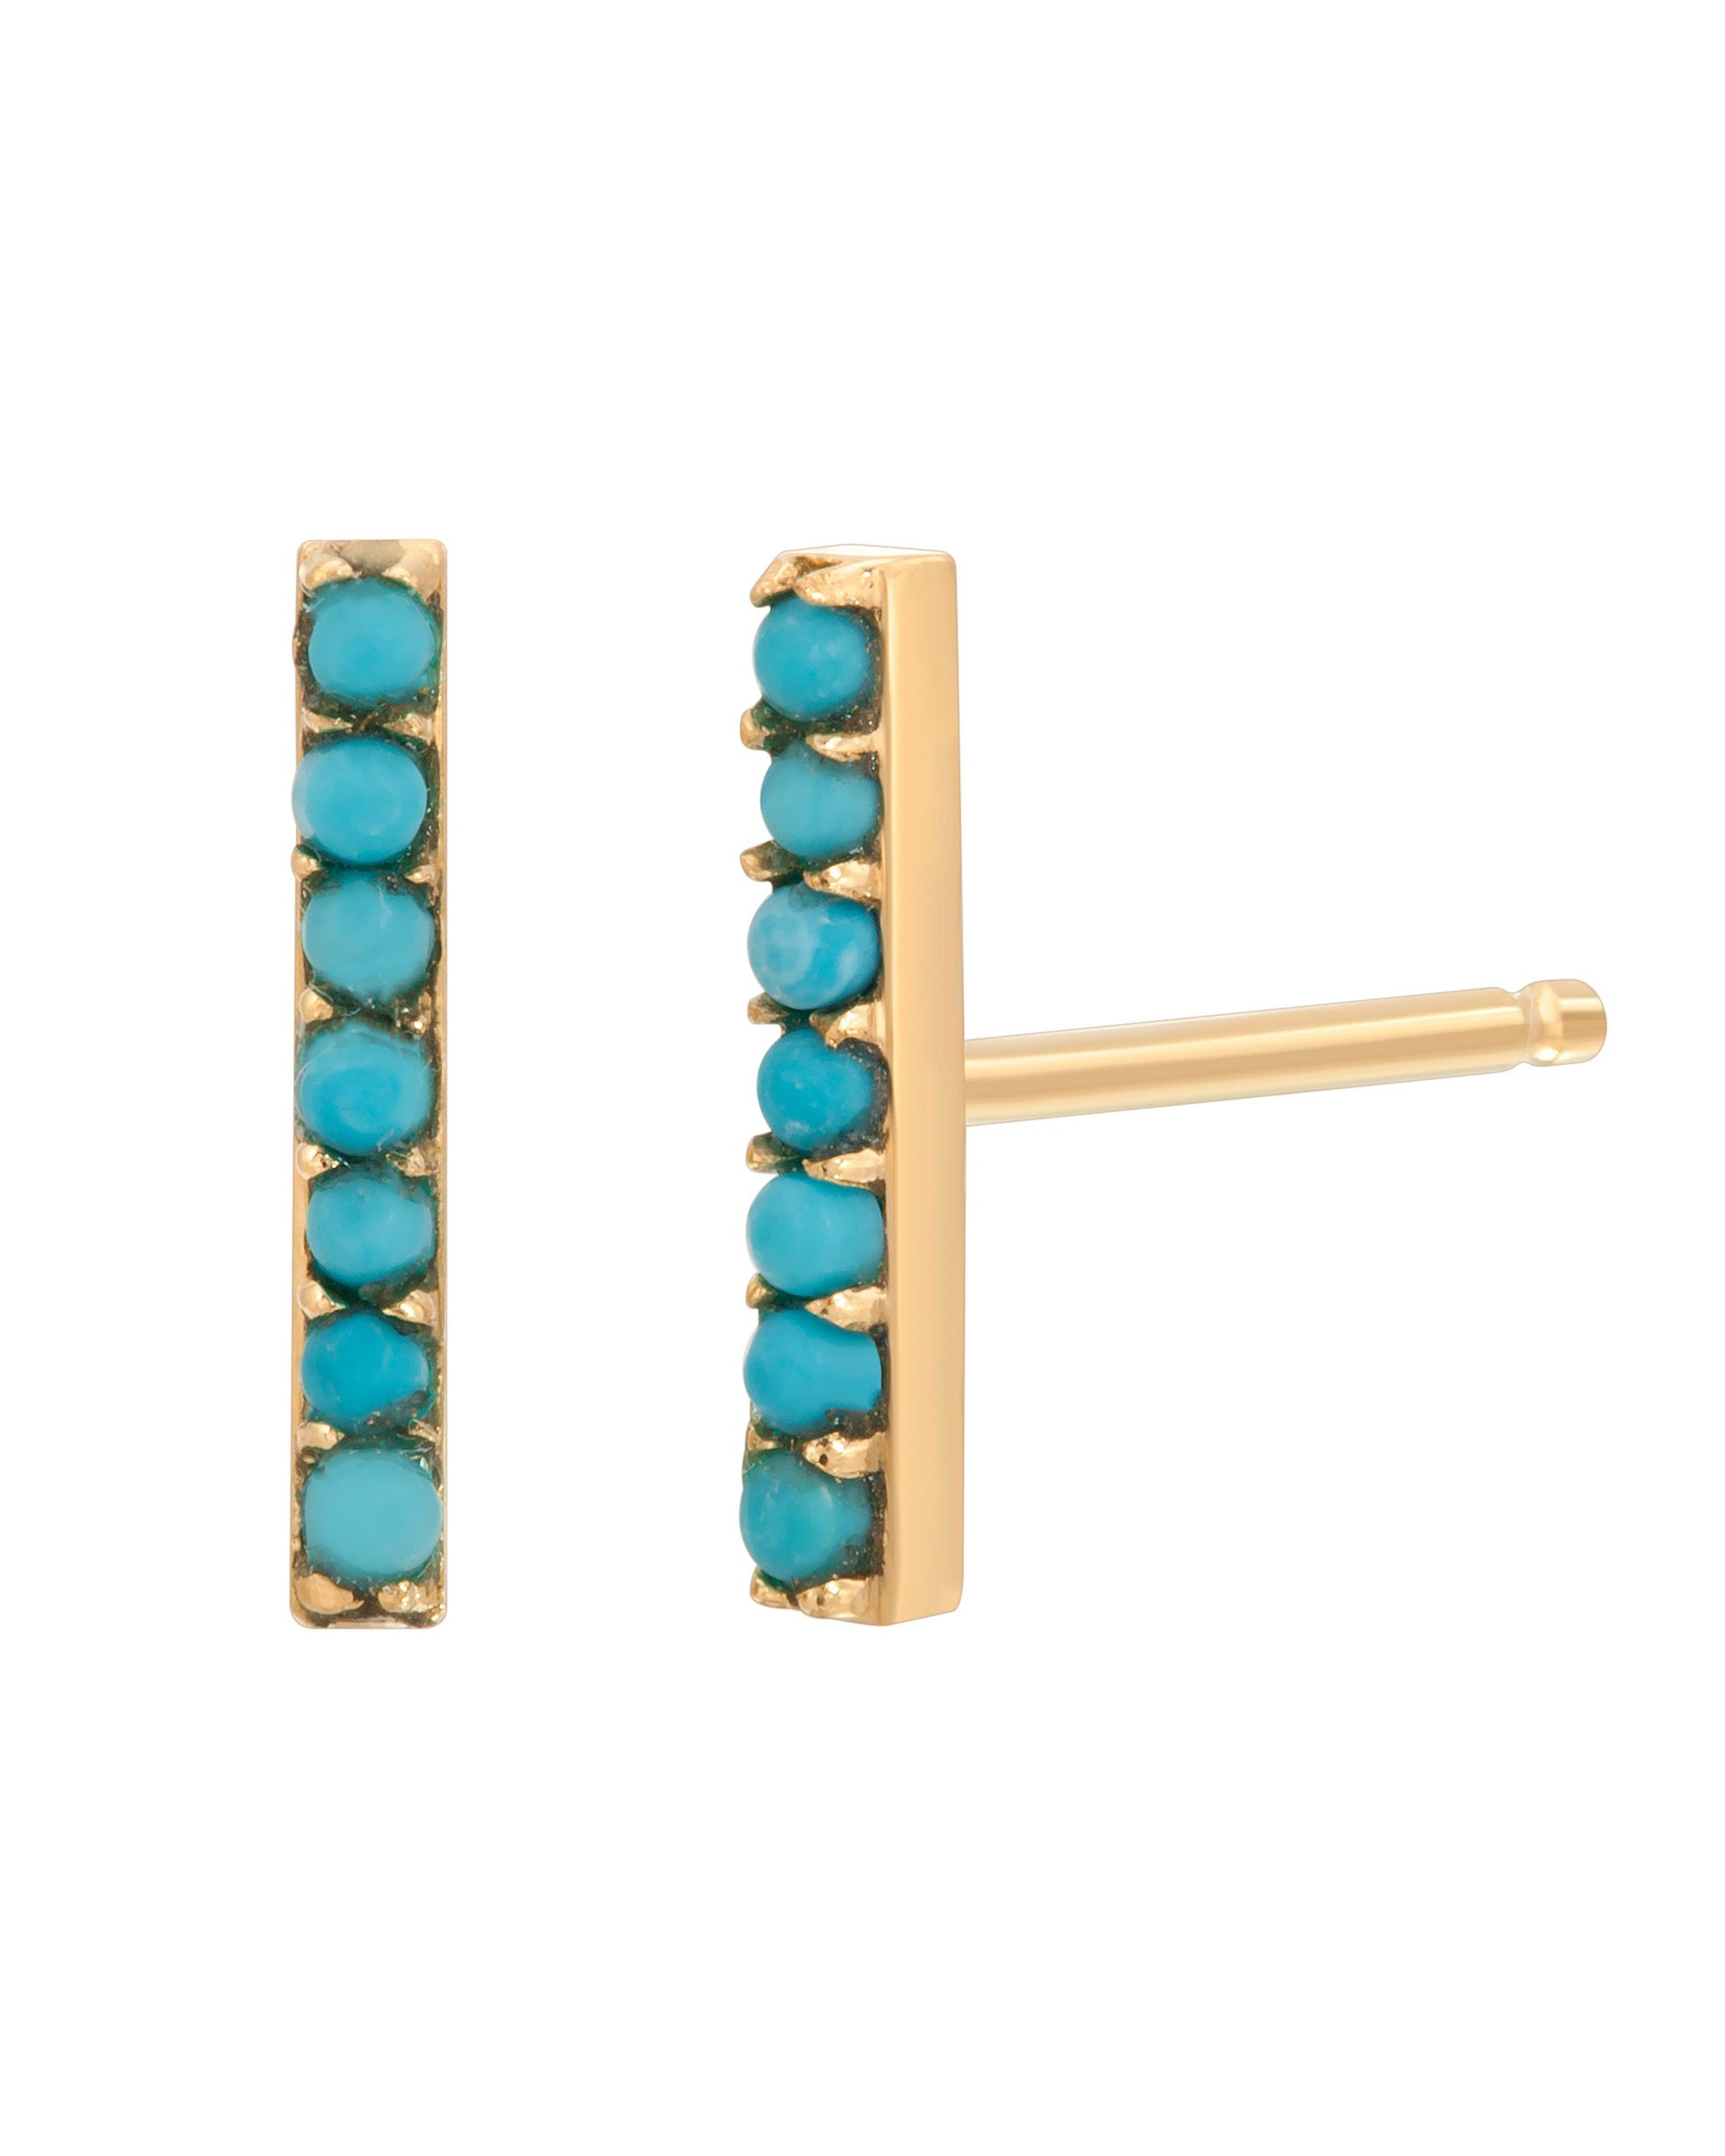 RIVER STUDS 9MM - TURQUOISE + TOBACCO